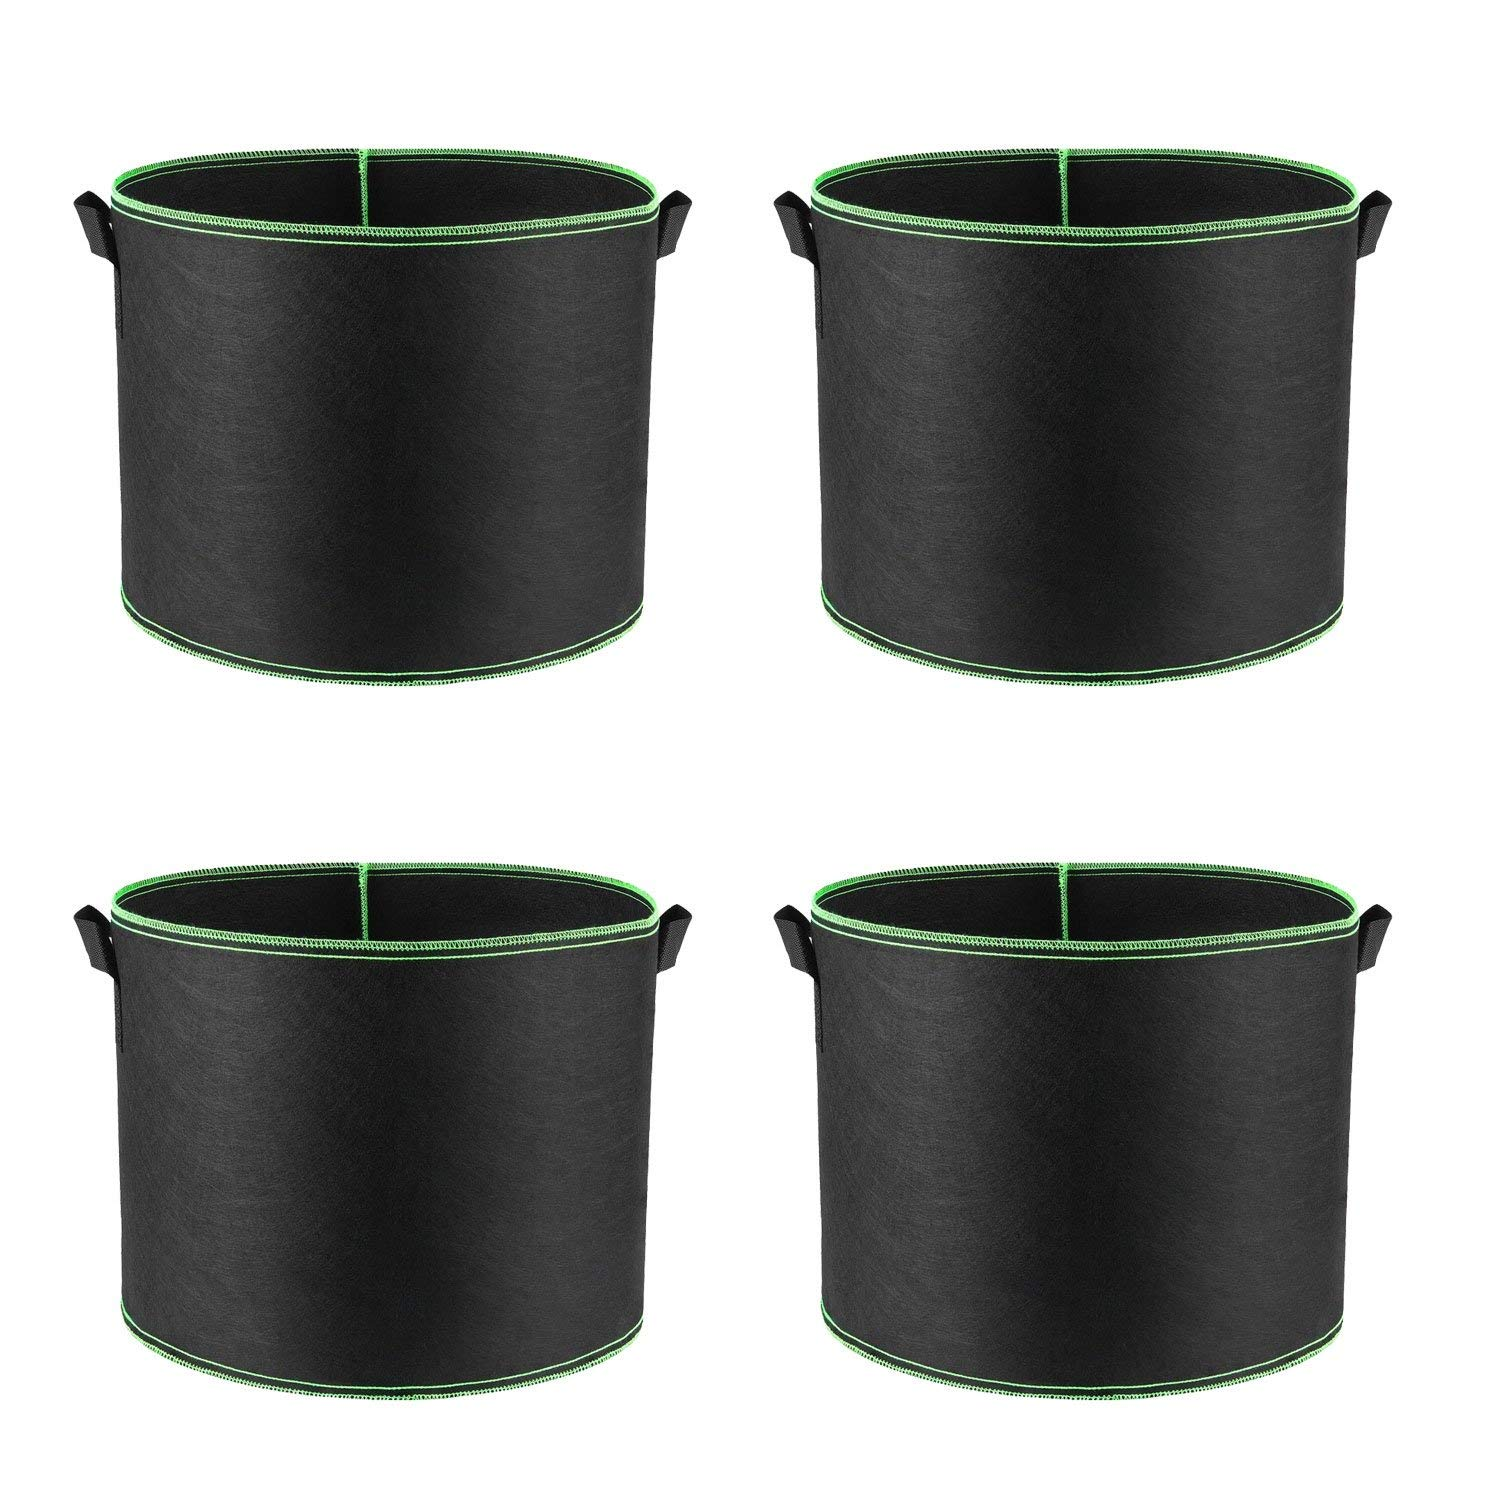 4-Pack 1 Gallon Grow Bags, Aeration Fabric Pots, Plant Container for Nursery Garden and Planting